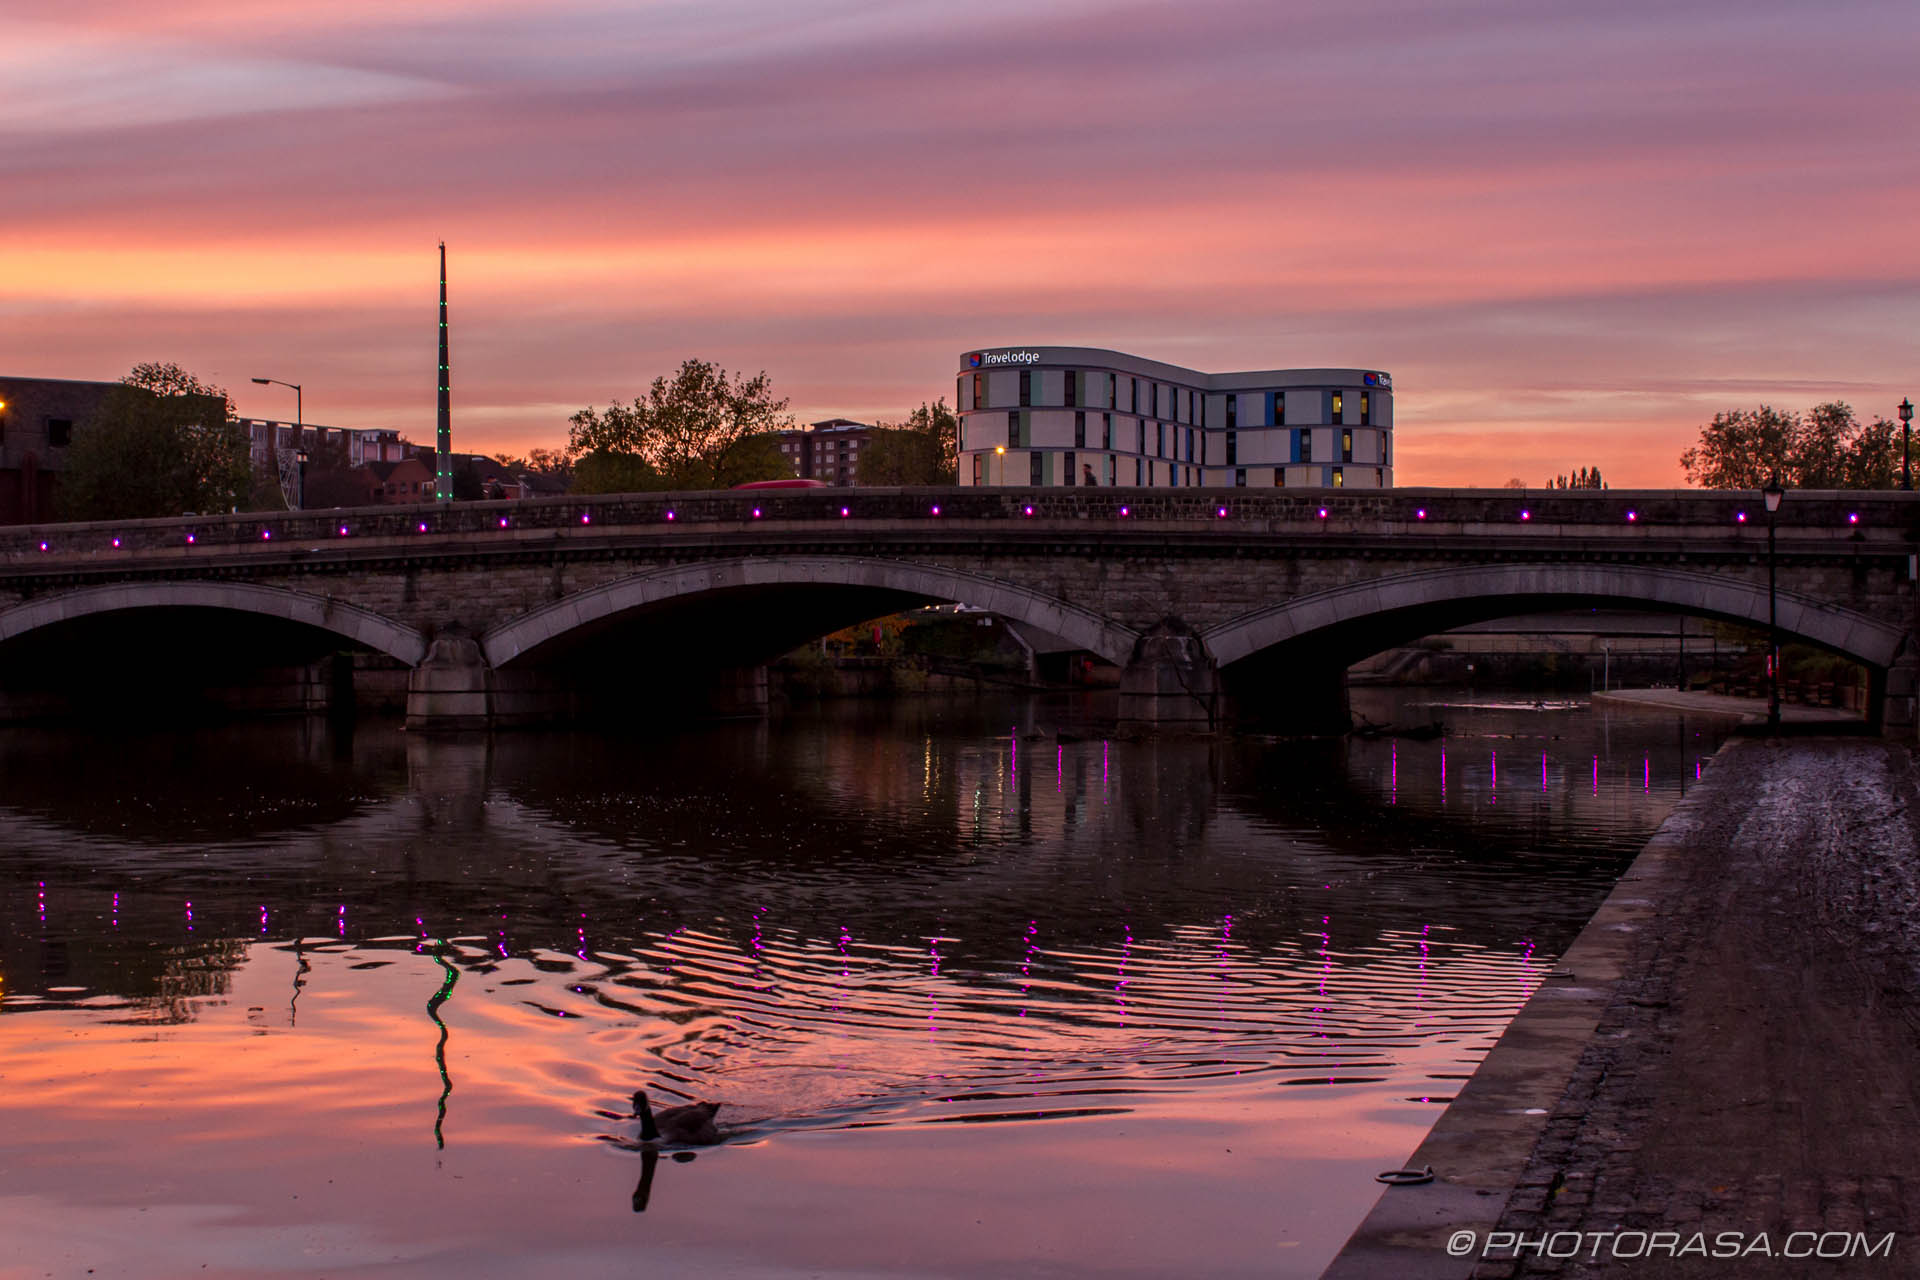 http://photorasa.com/red-sky-night/red-sunset-at-maidstone-bridge/